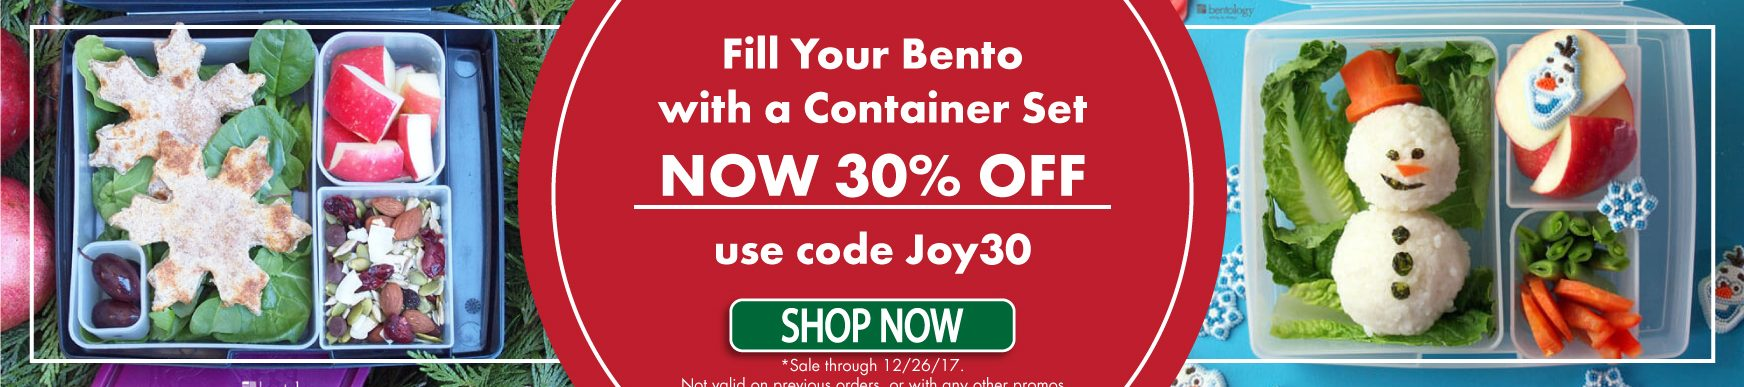 Lunch Box Container Sets are 30% OFF This Holiday Season!!!